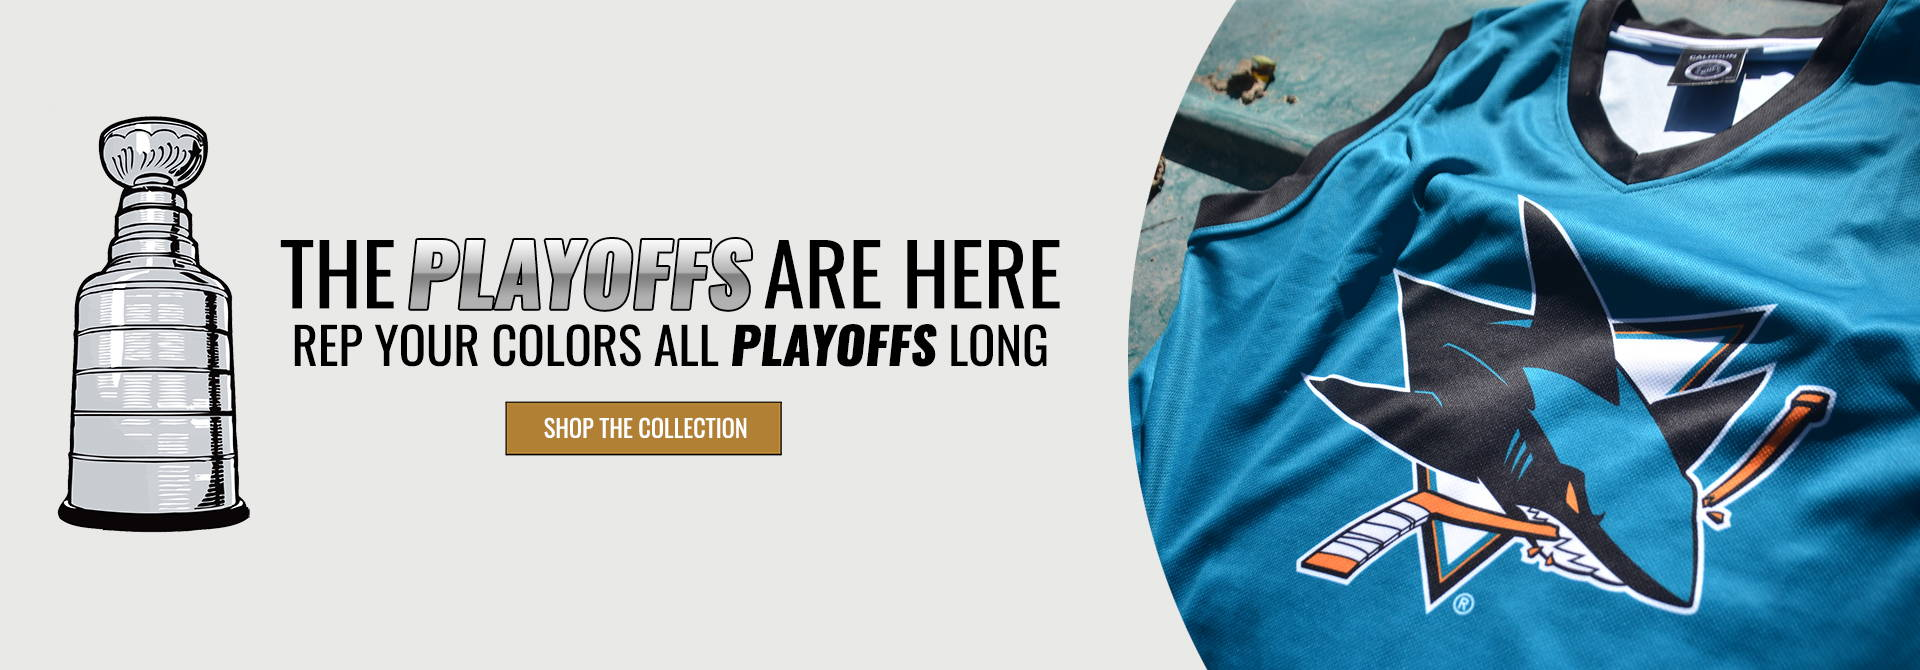 Bench Clearers Playoffs 2019 Desktop Product Banner